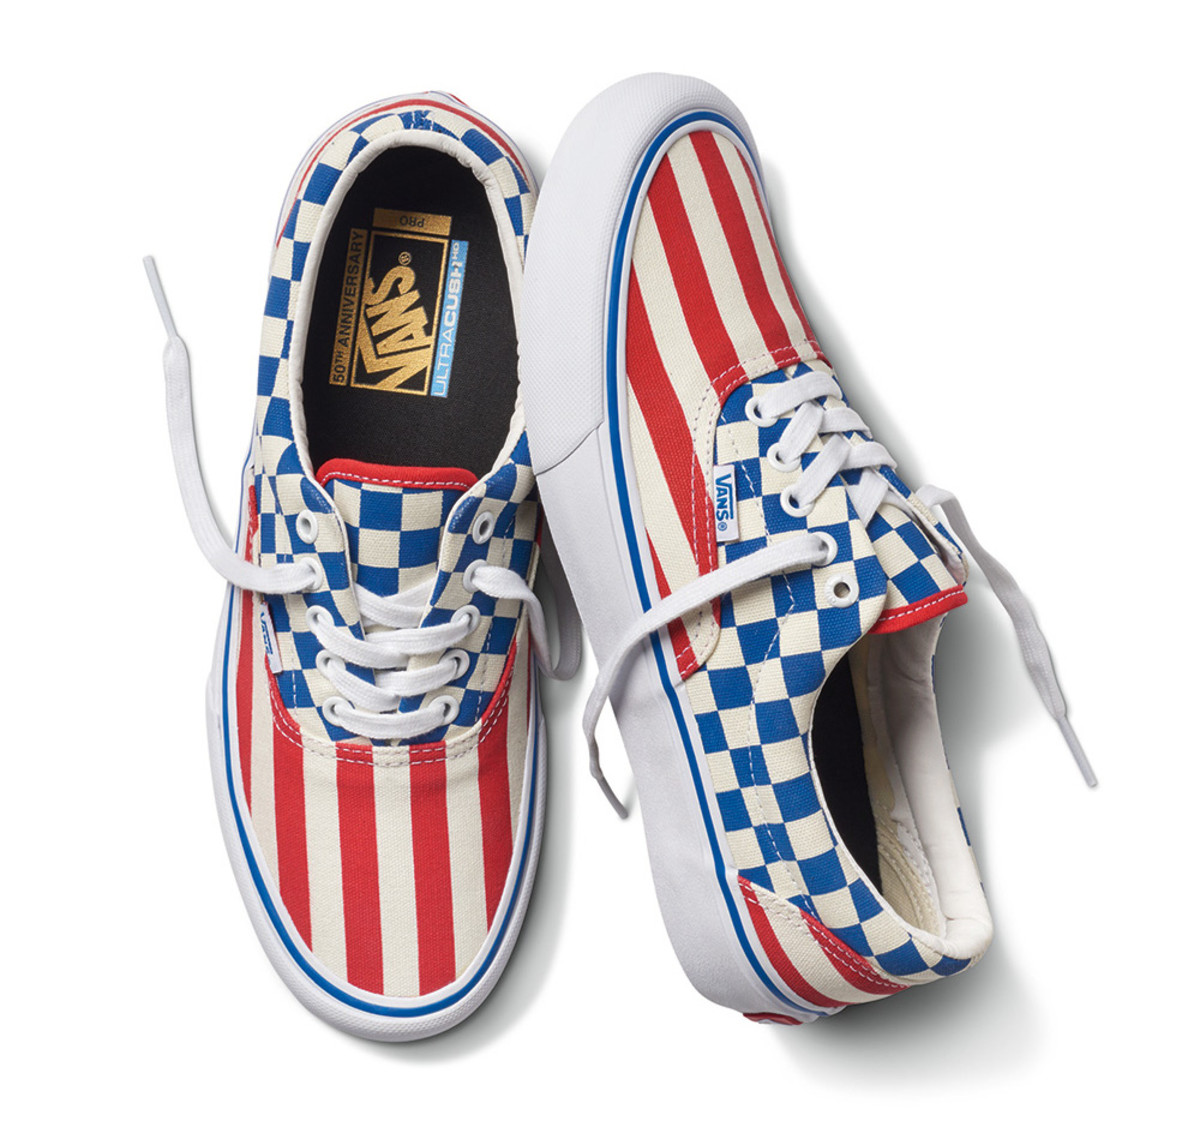 vans-pro-classics-anniversary-collection-02.jpg